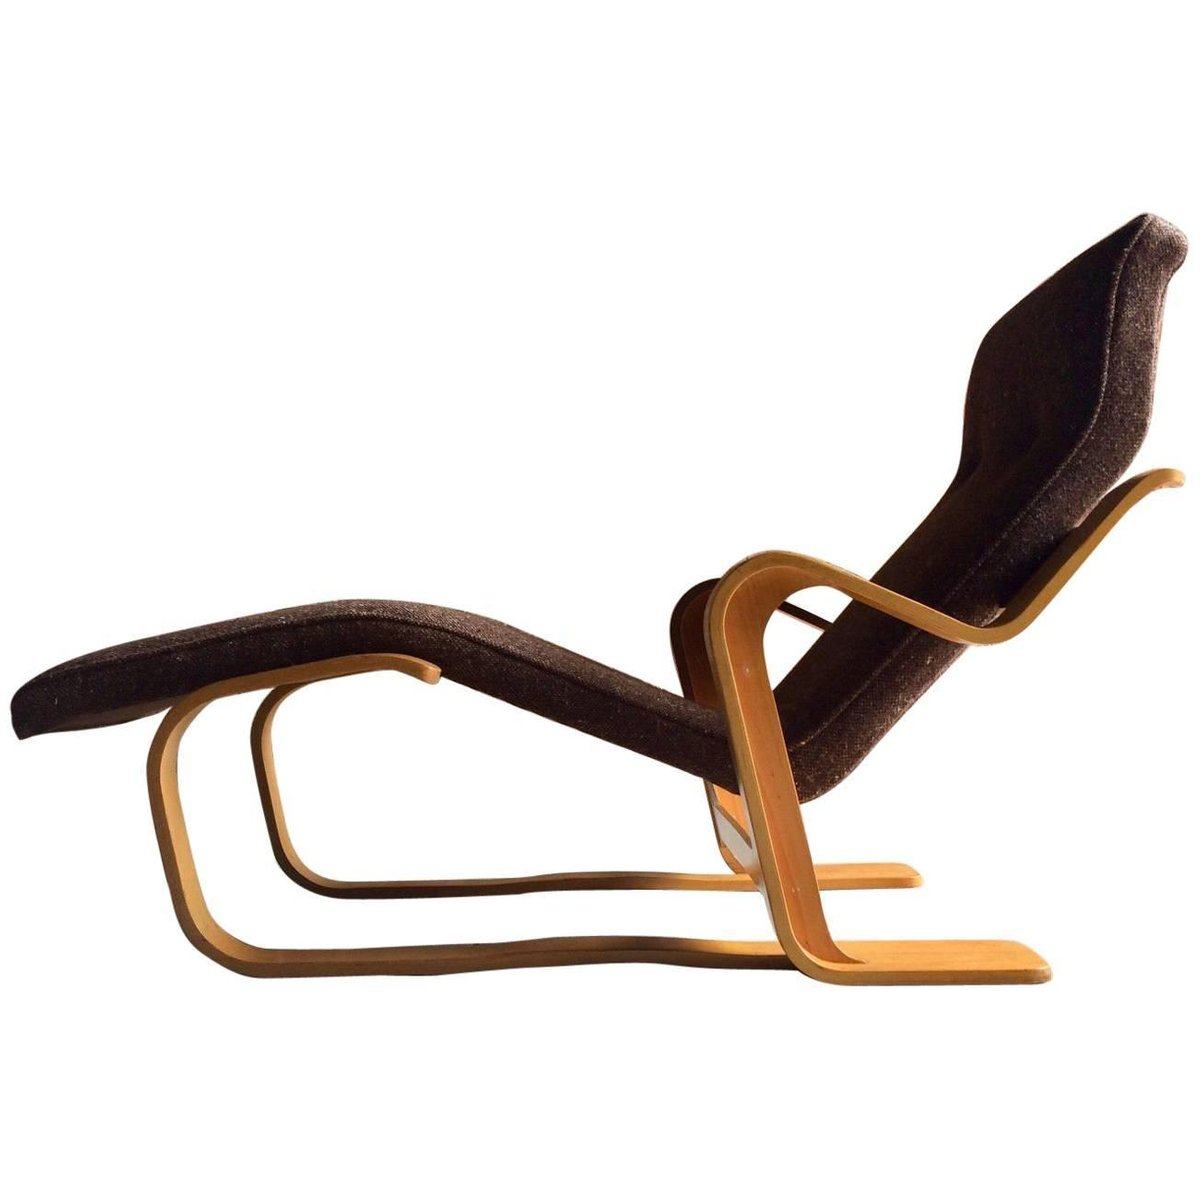 bauhaus chaise lounge by marcel breuer for knoll 1970s for sale at pamono. Black Bedroom Furniture Sets. Home Design Ideas